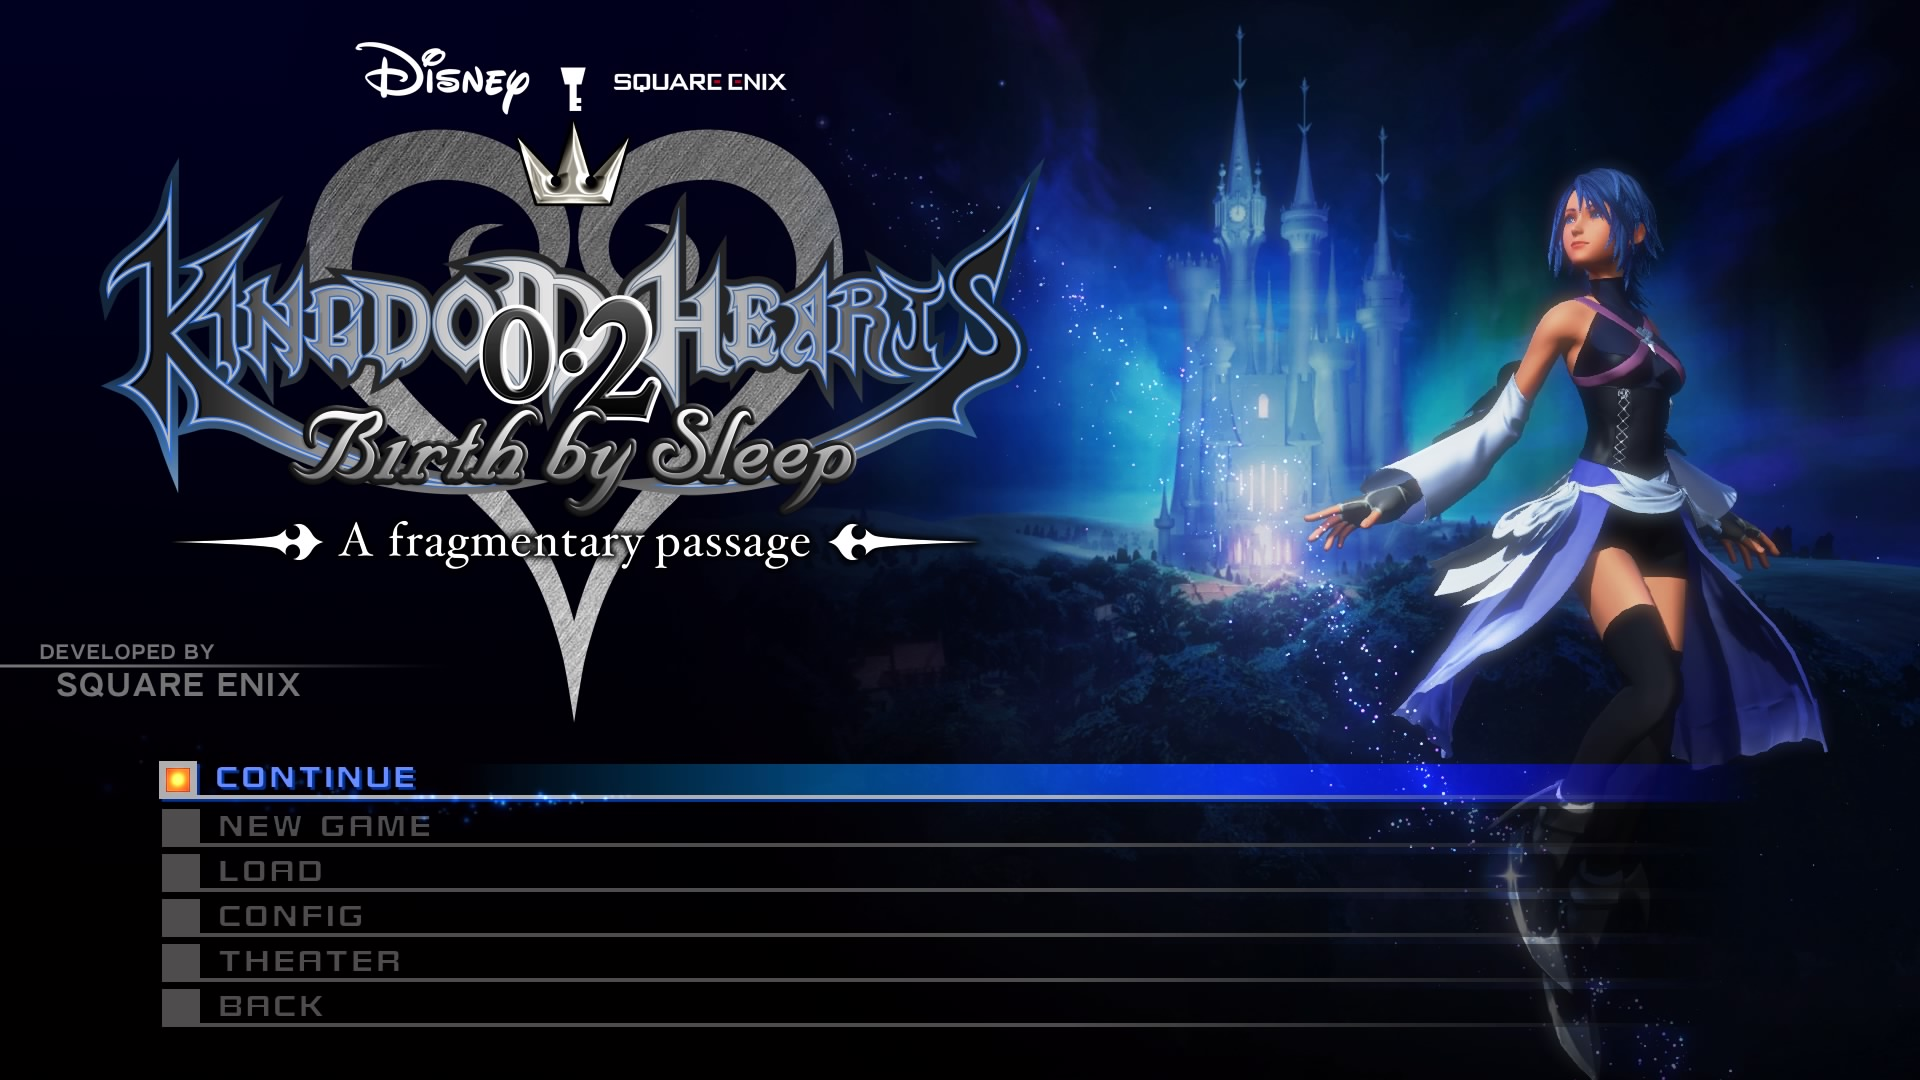 Kingdom hearts 02 birth by sleep a fragmentary passage is awesome after dream drop distance and back cover only one part of kingdom hearts hd 28 final chapter prologue remained kingdom hearts 02 birth by sleep a voltagebd Choice Image